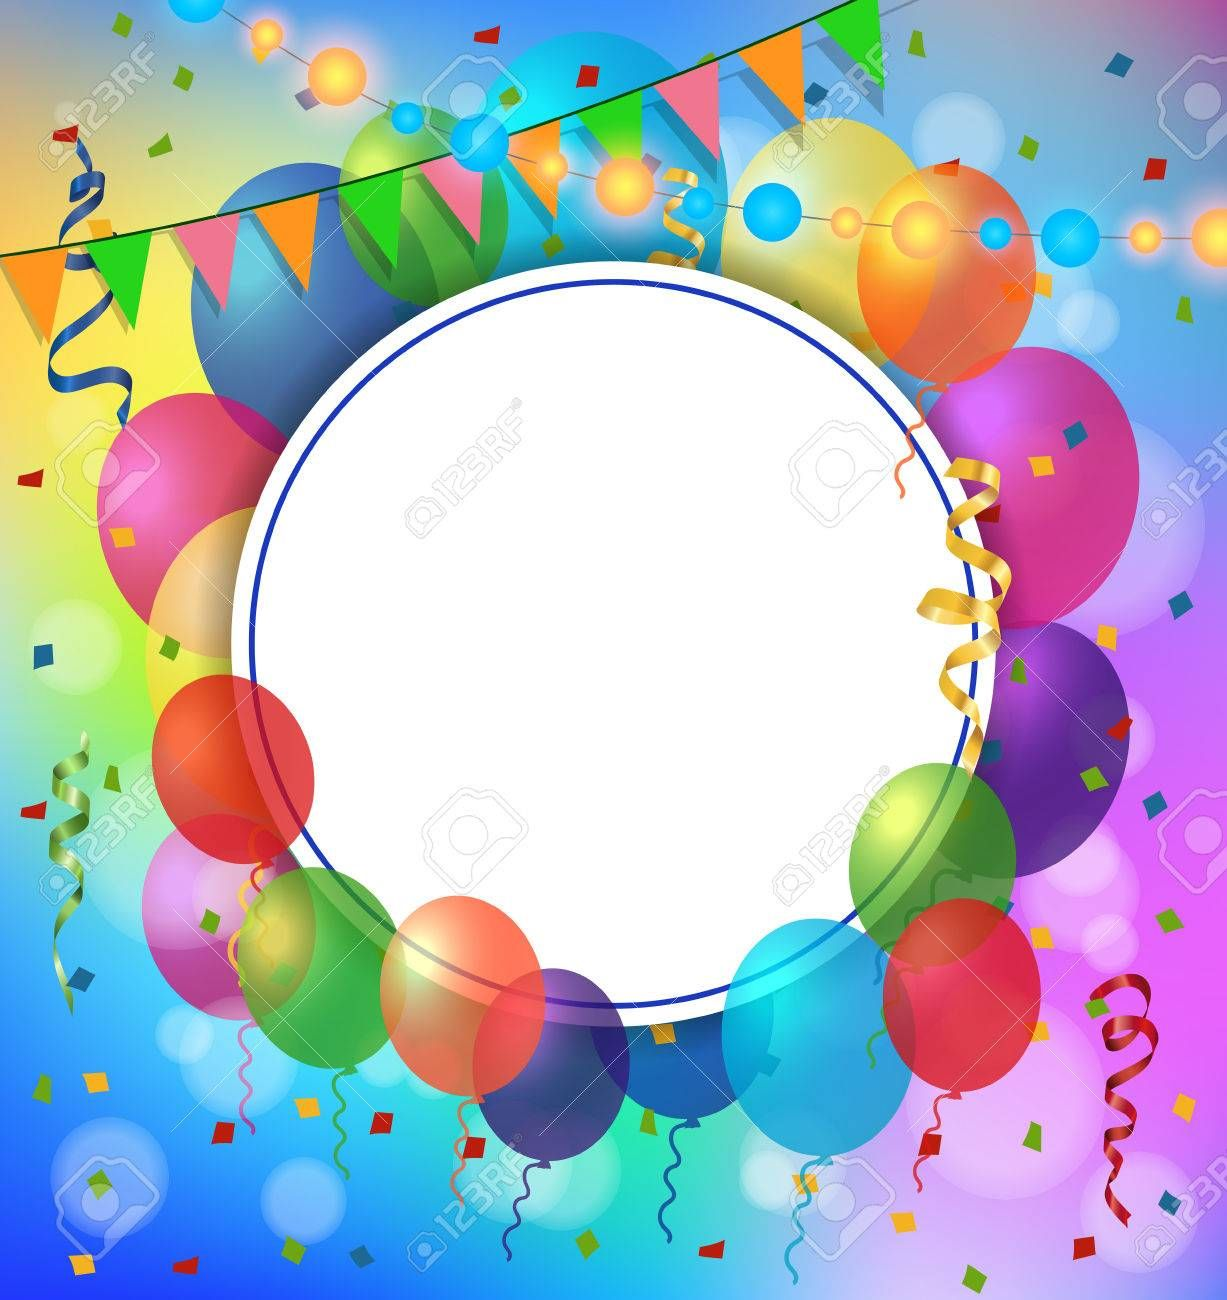 Blank Greeting Card With Round Frame Balloons And Garland For Greeting Cards Posters Leaflets And Brochures Balloons Birthday Frames Birthday Photo Frame